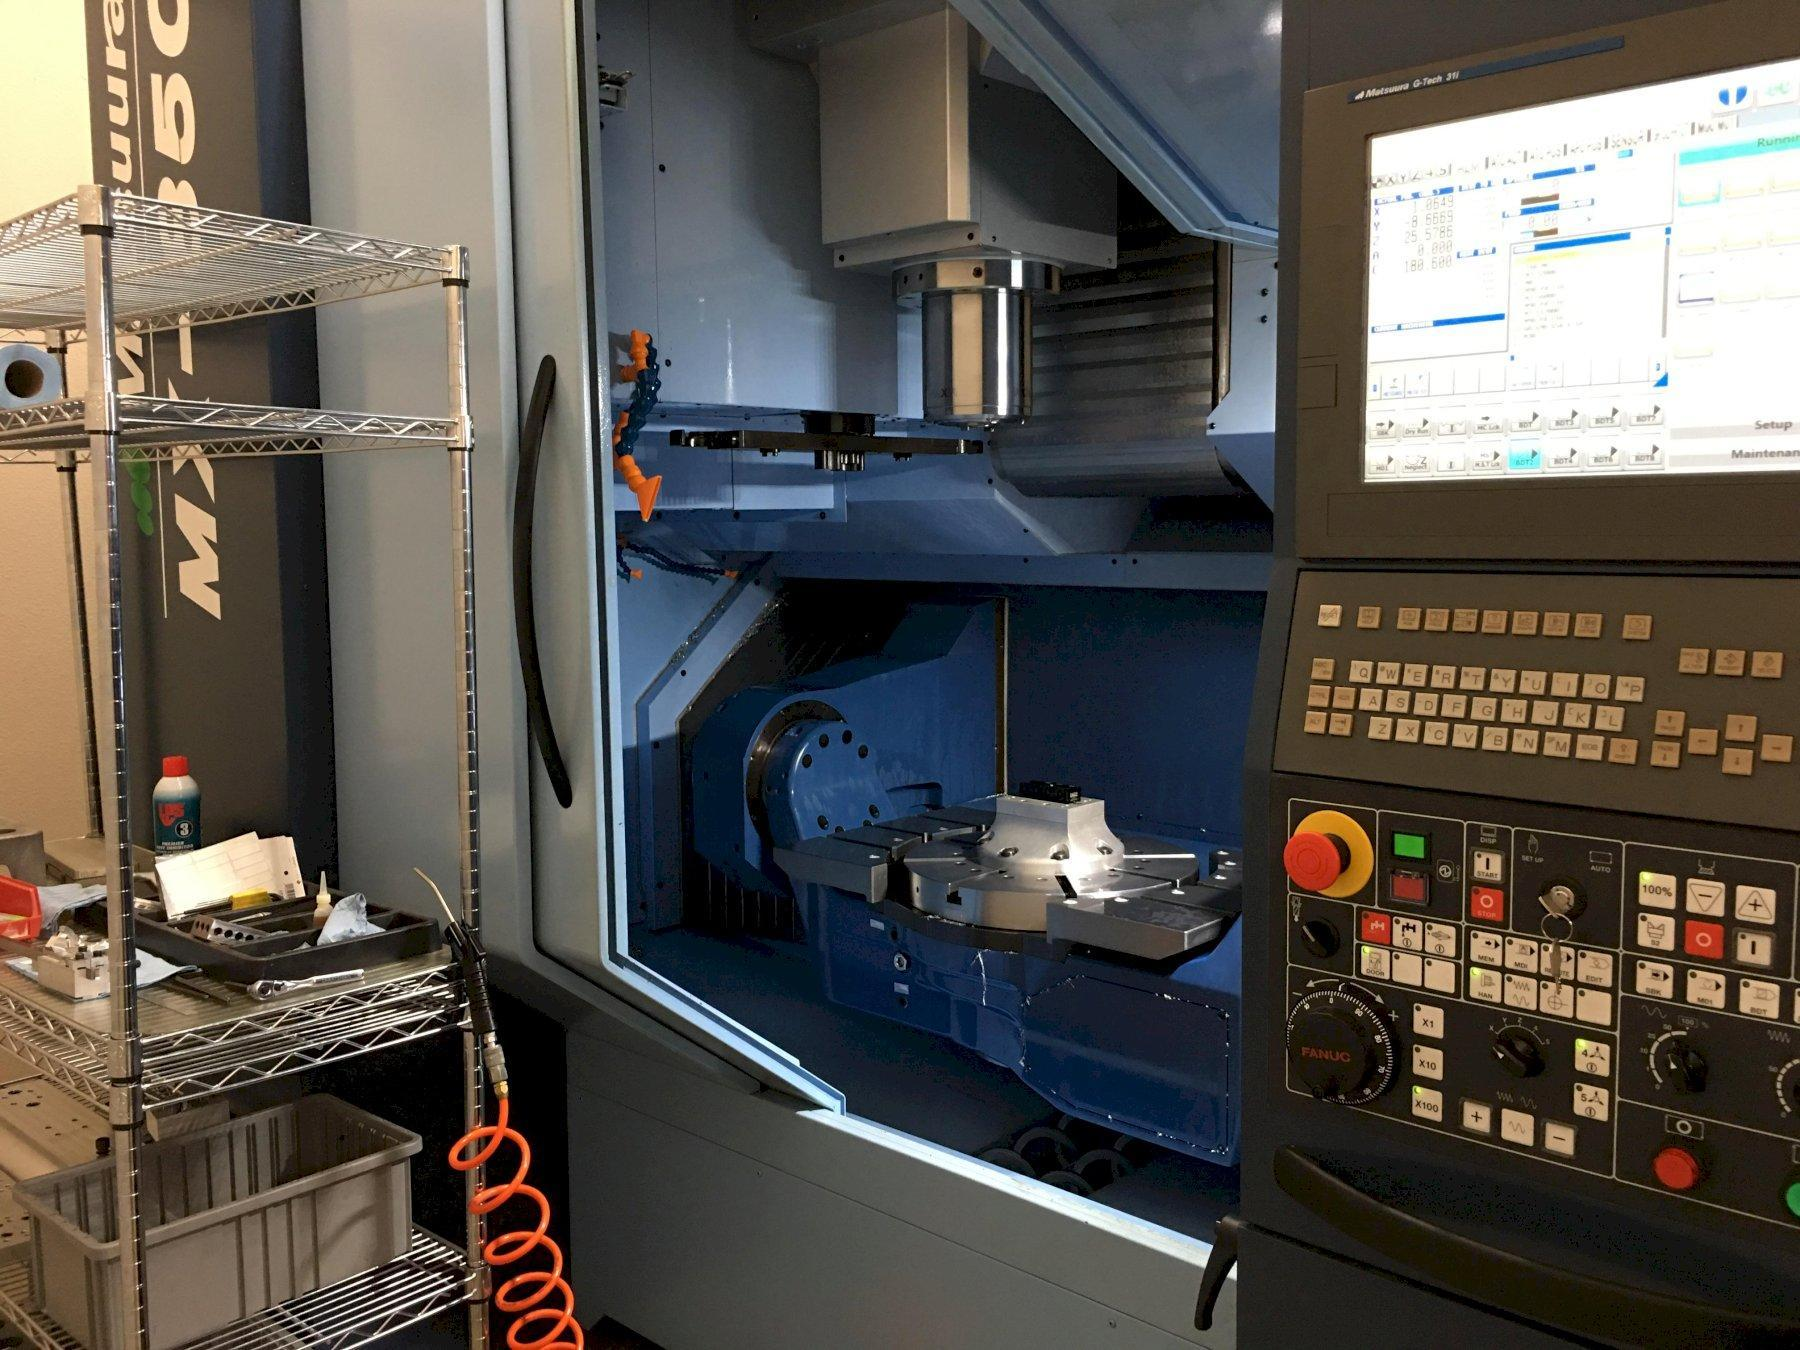 2017 Matsuura MX850 - CNC 5-Axis Vertical Machining Center